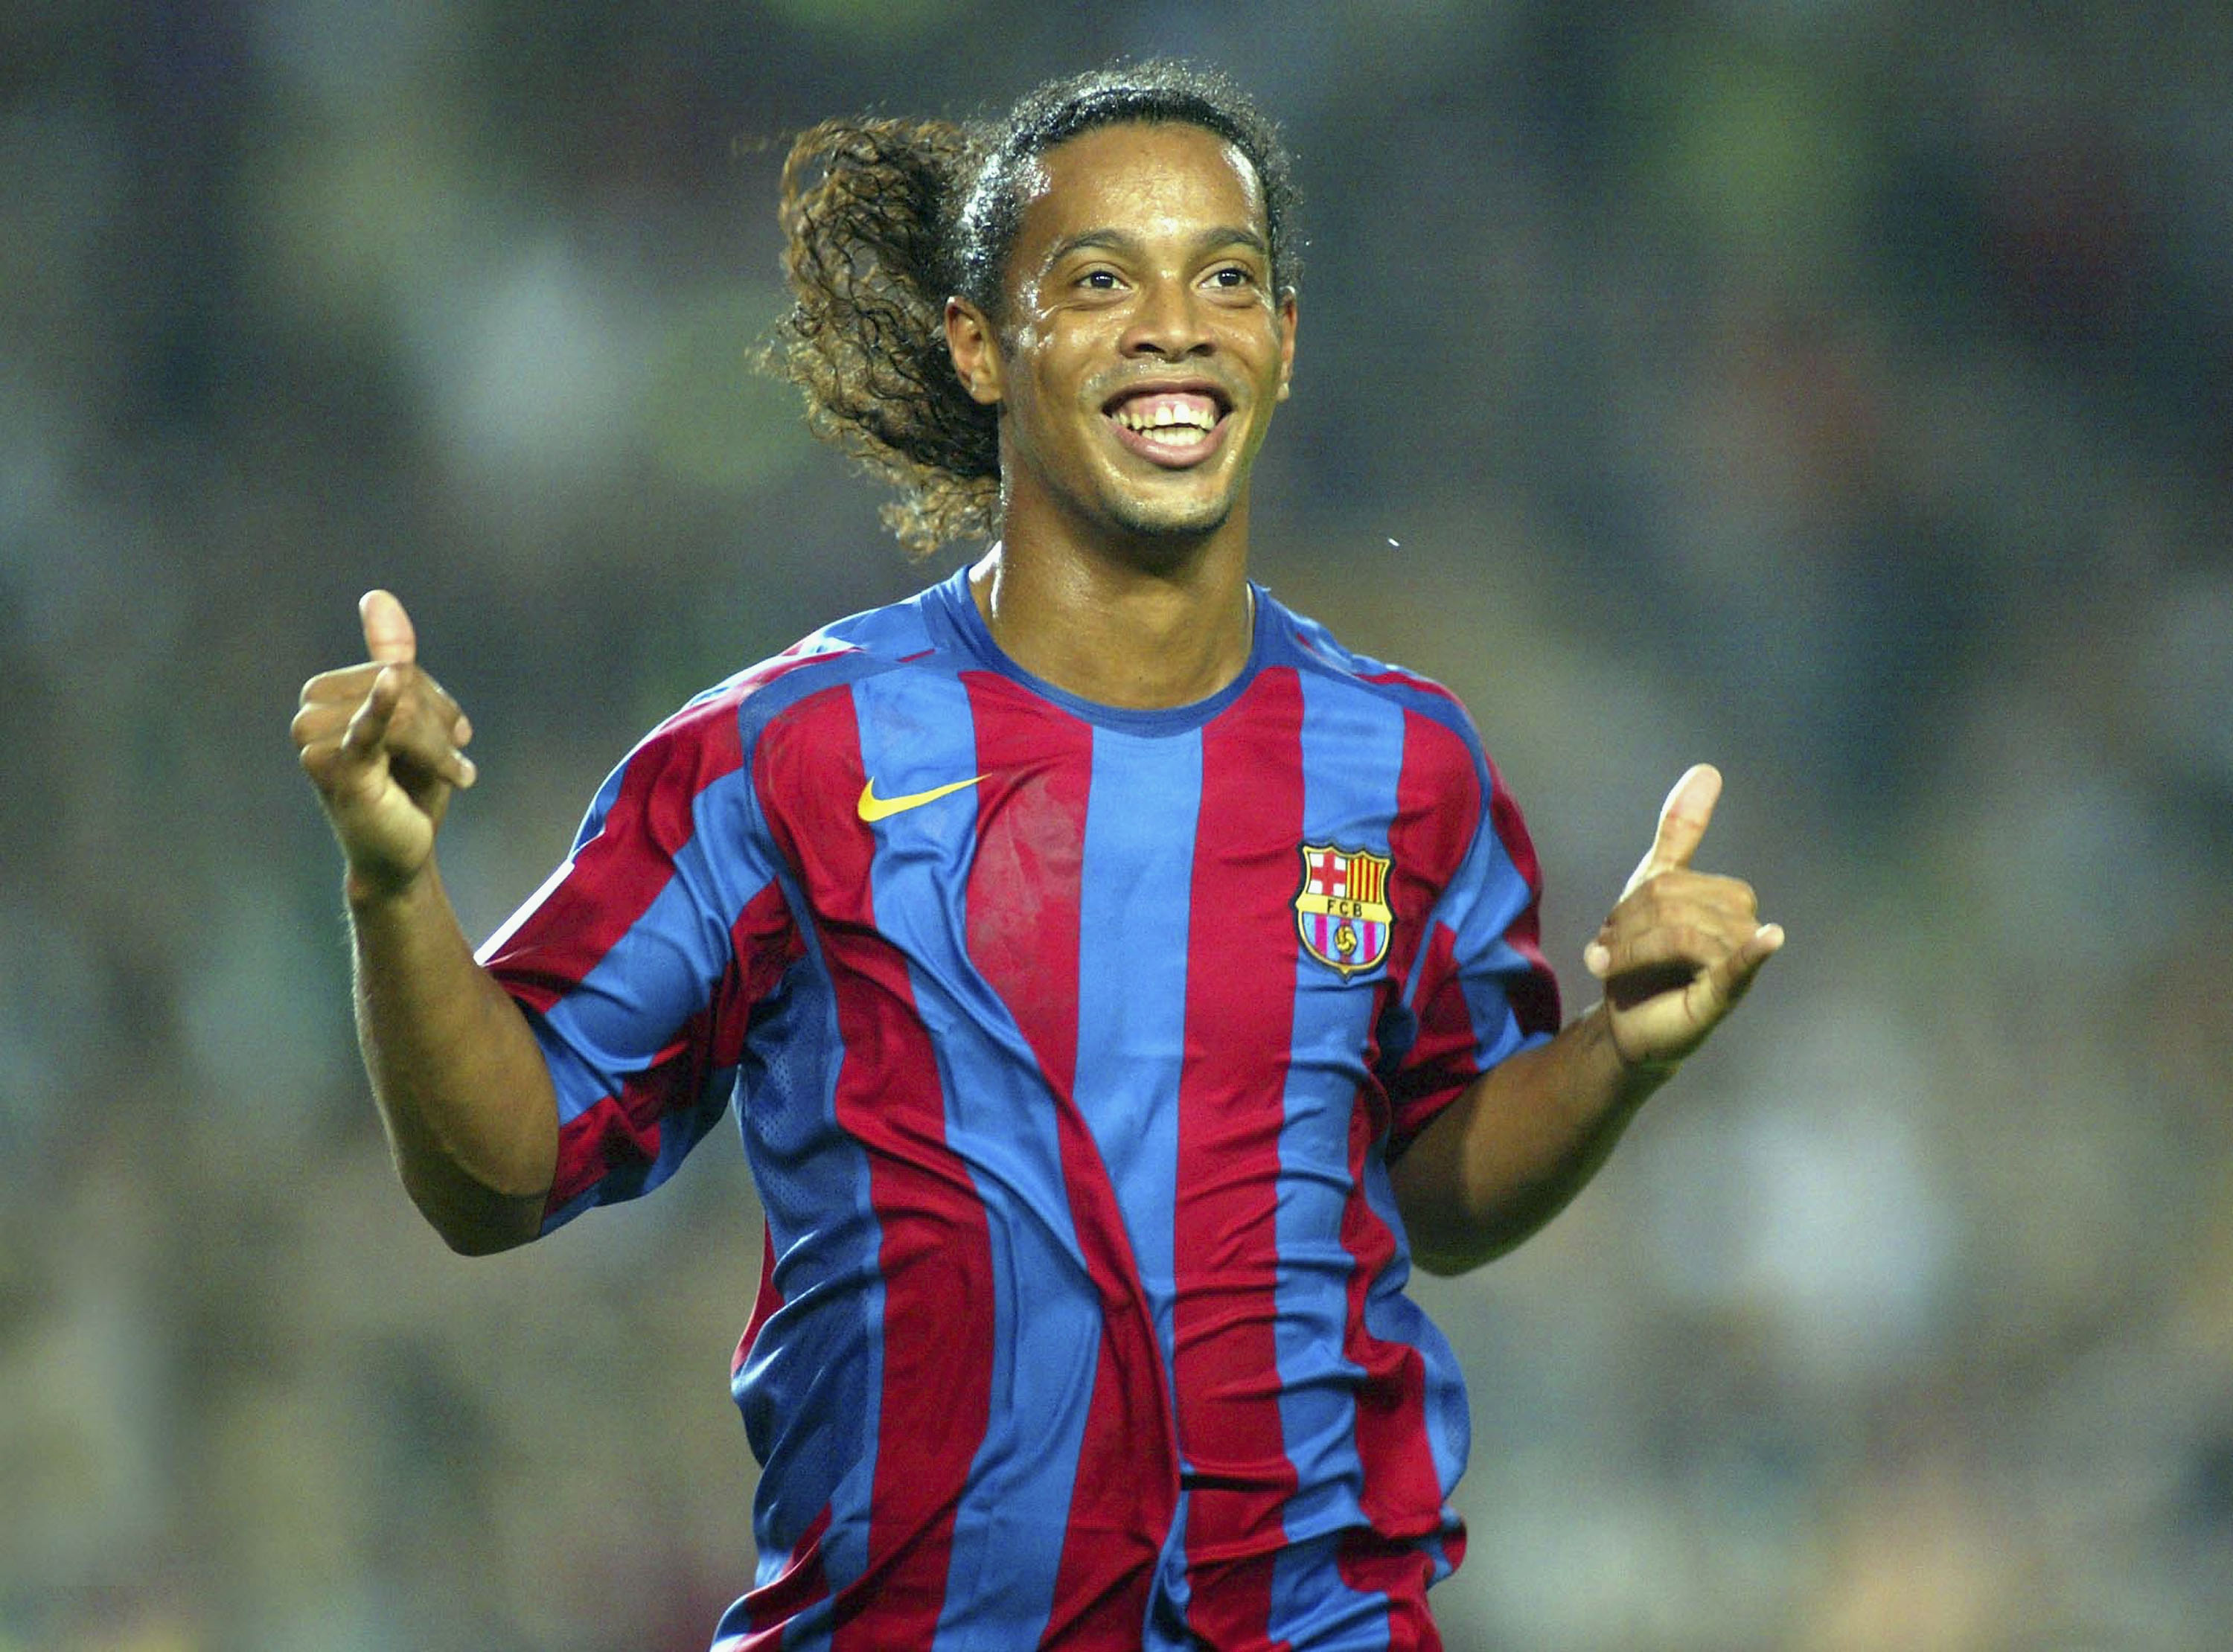 Ronaldinho believes Manchester City ace Gabriel Jesus can replace Lionel Messi as the best player in the world